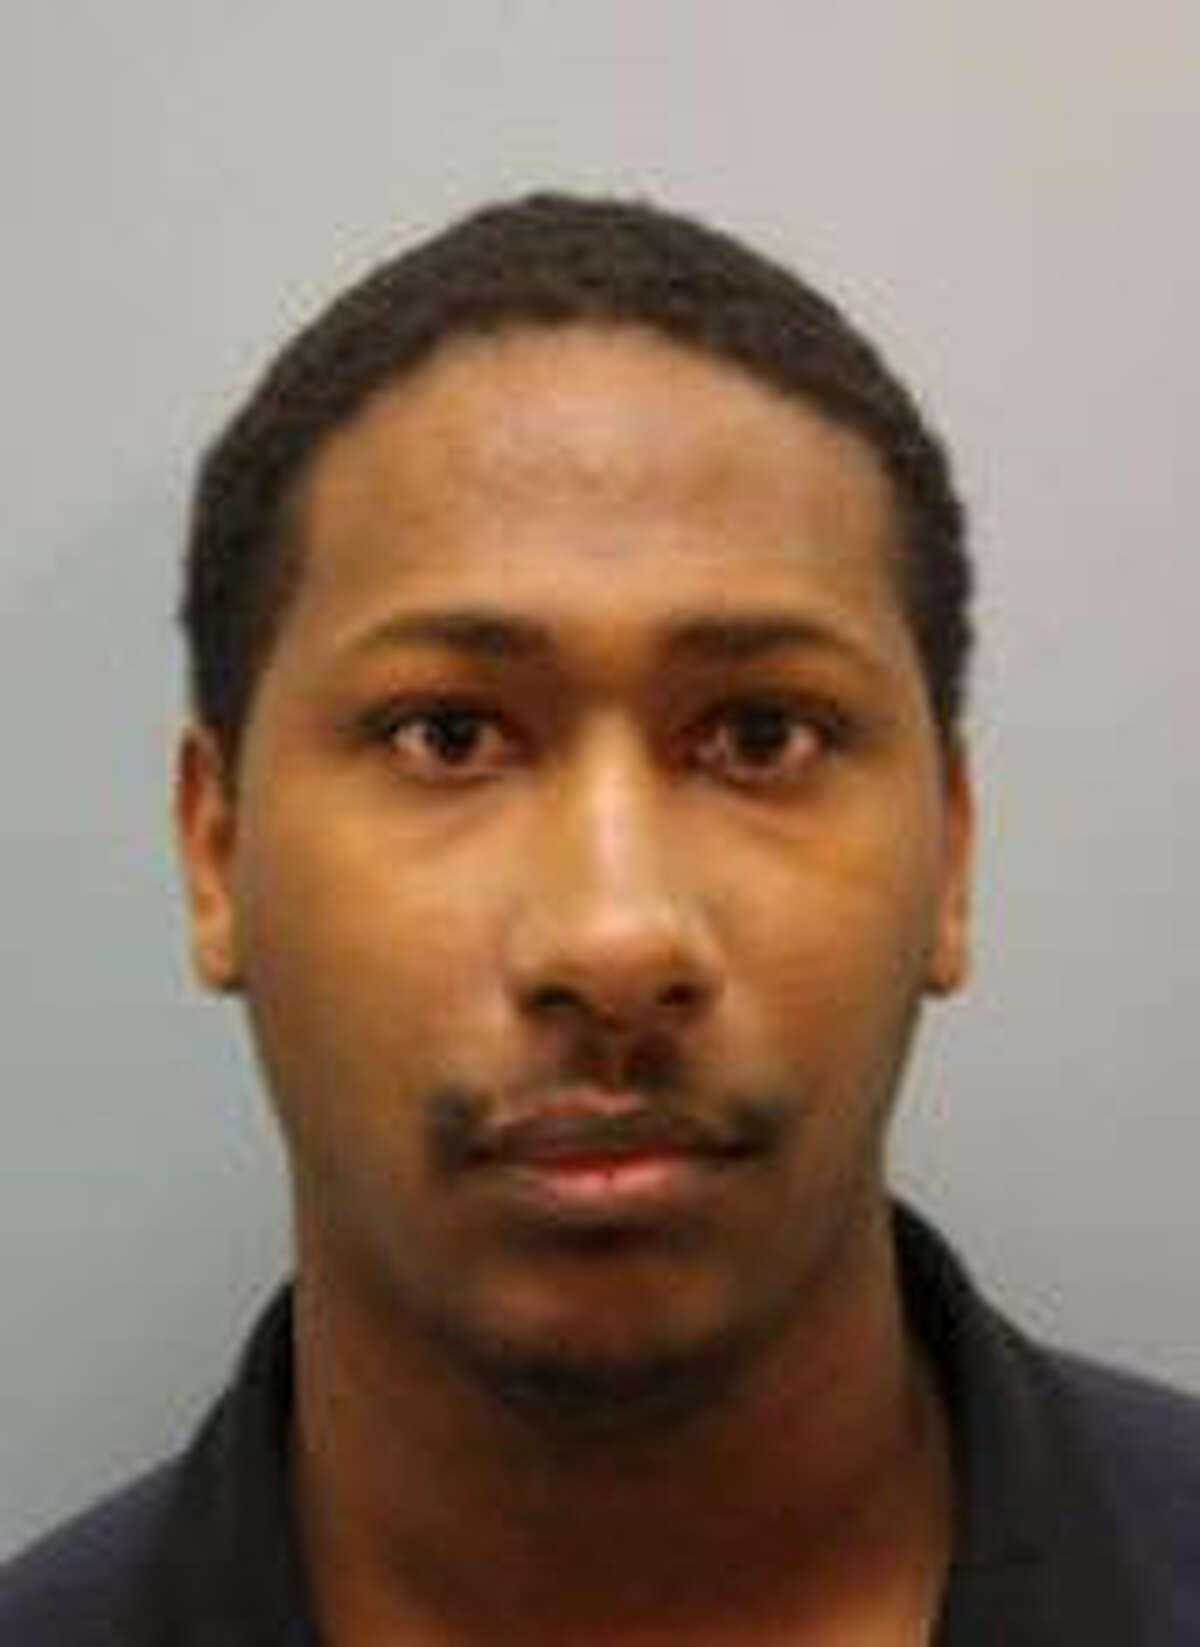 Aakiel Kendrick was charged with capital murder.